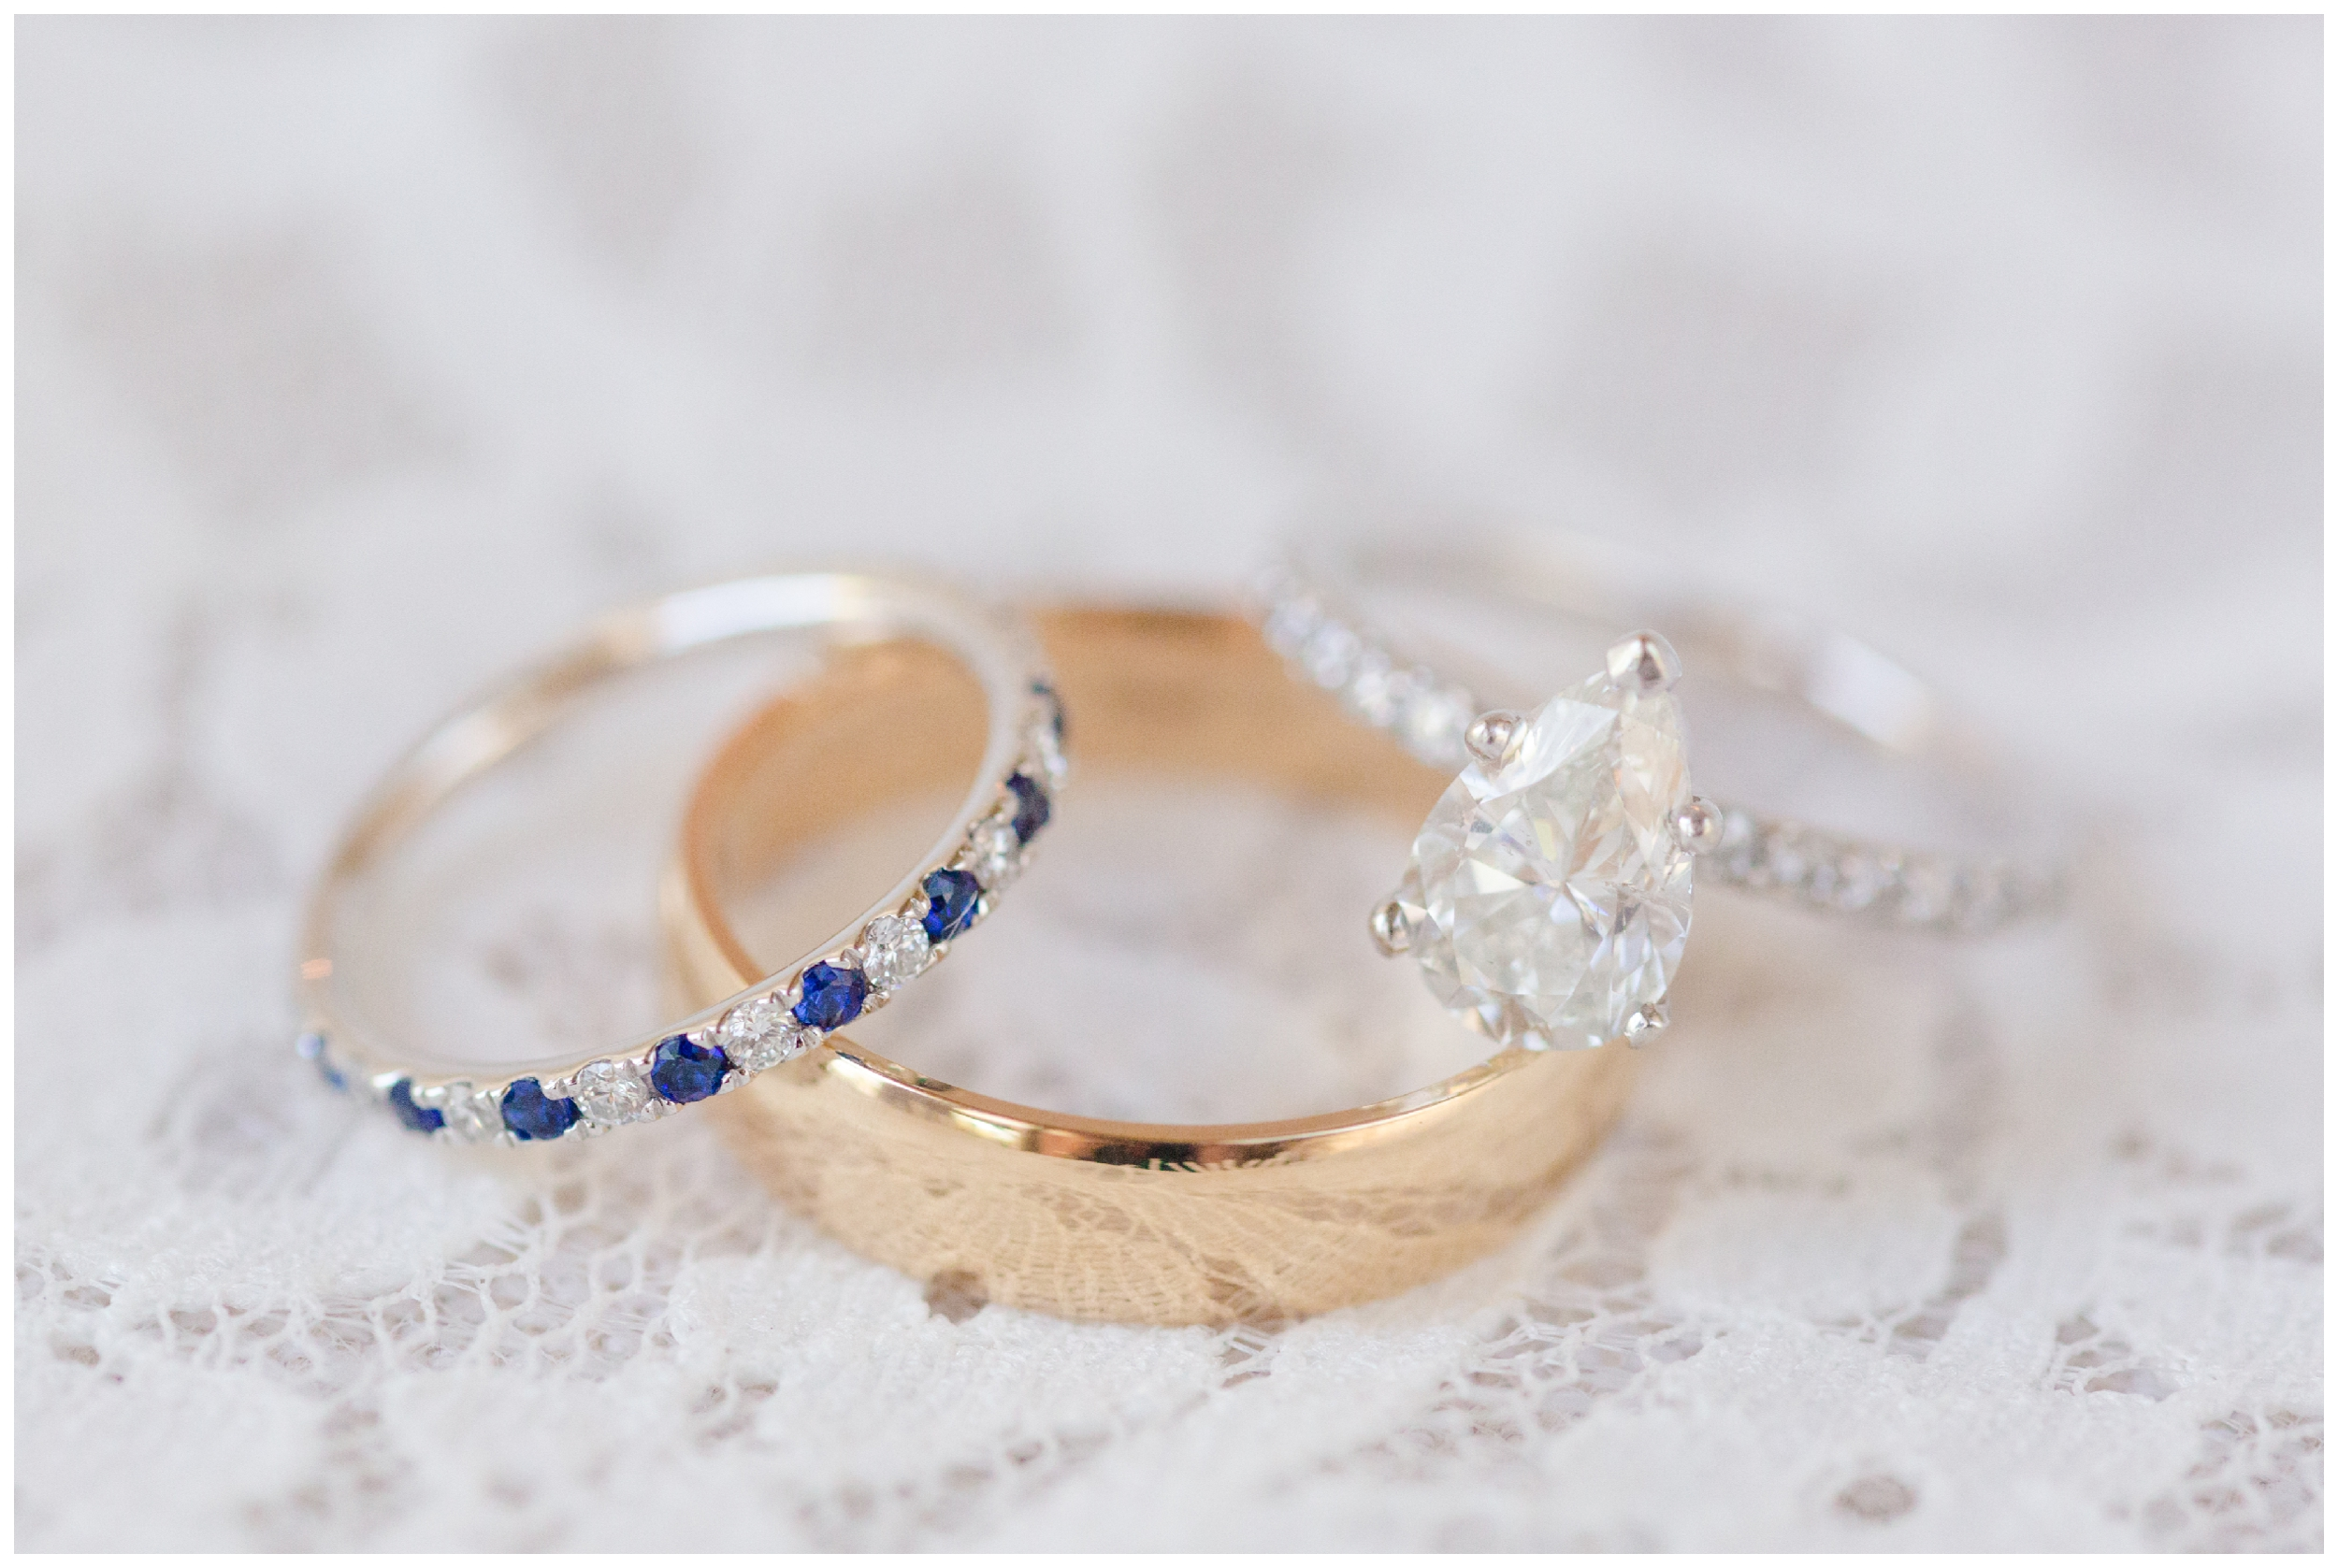 bride and groom ring set